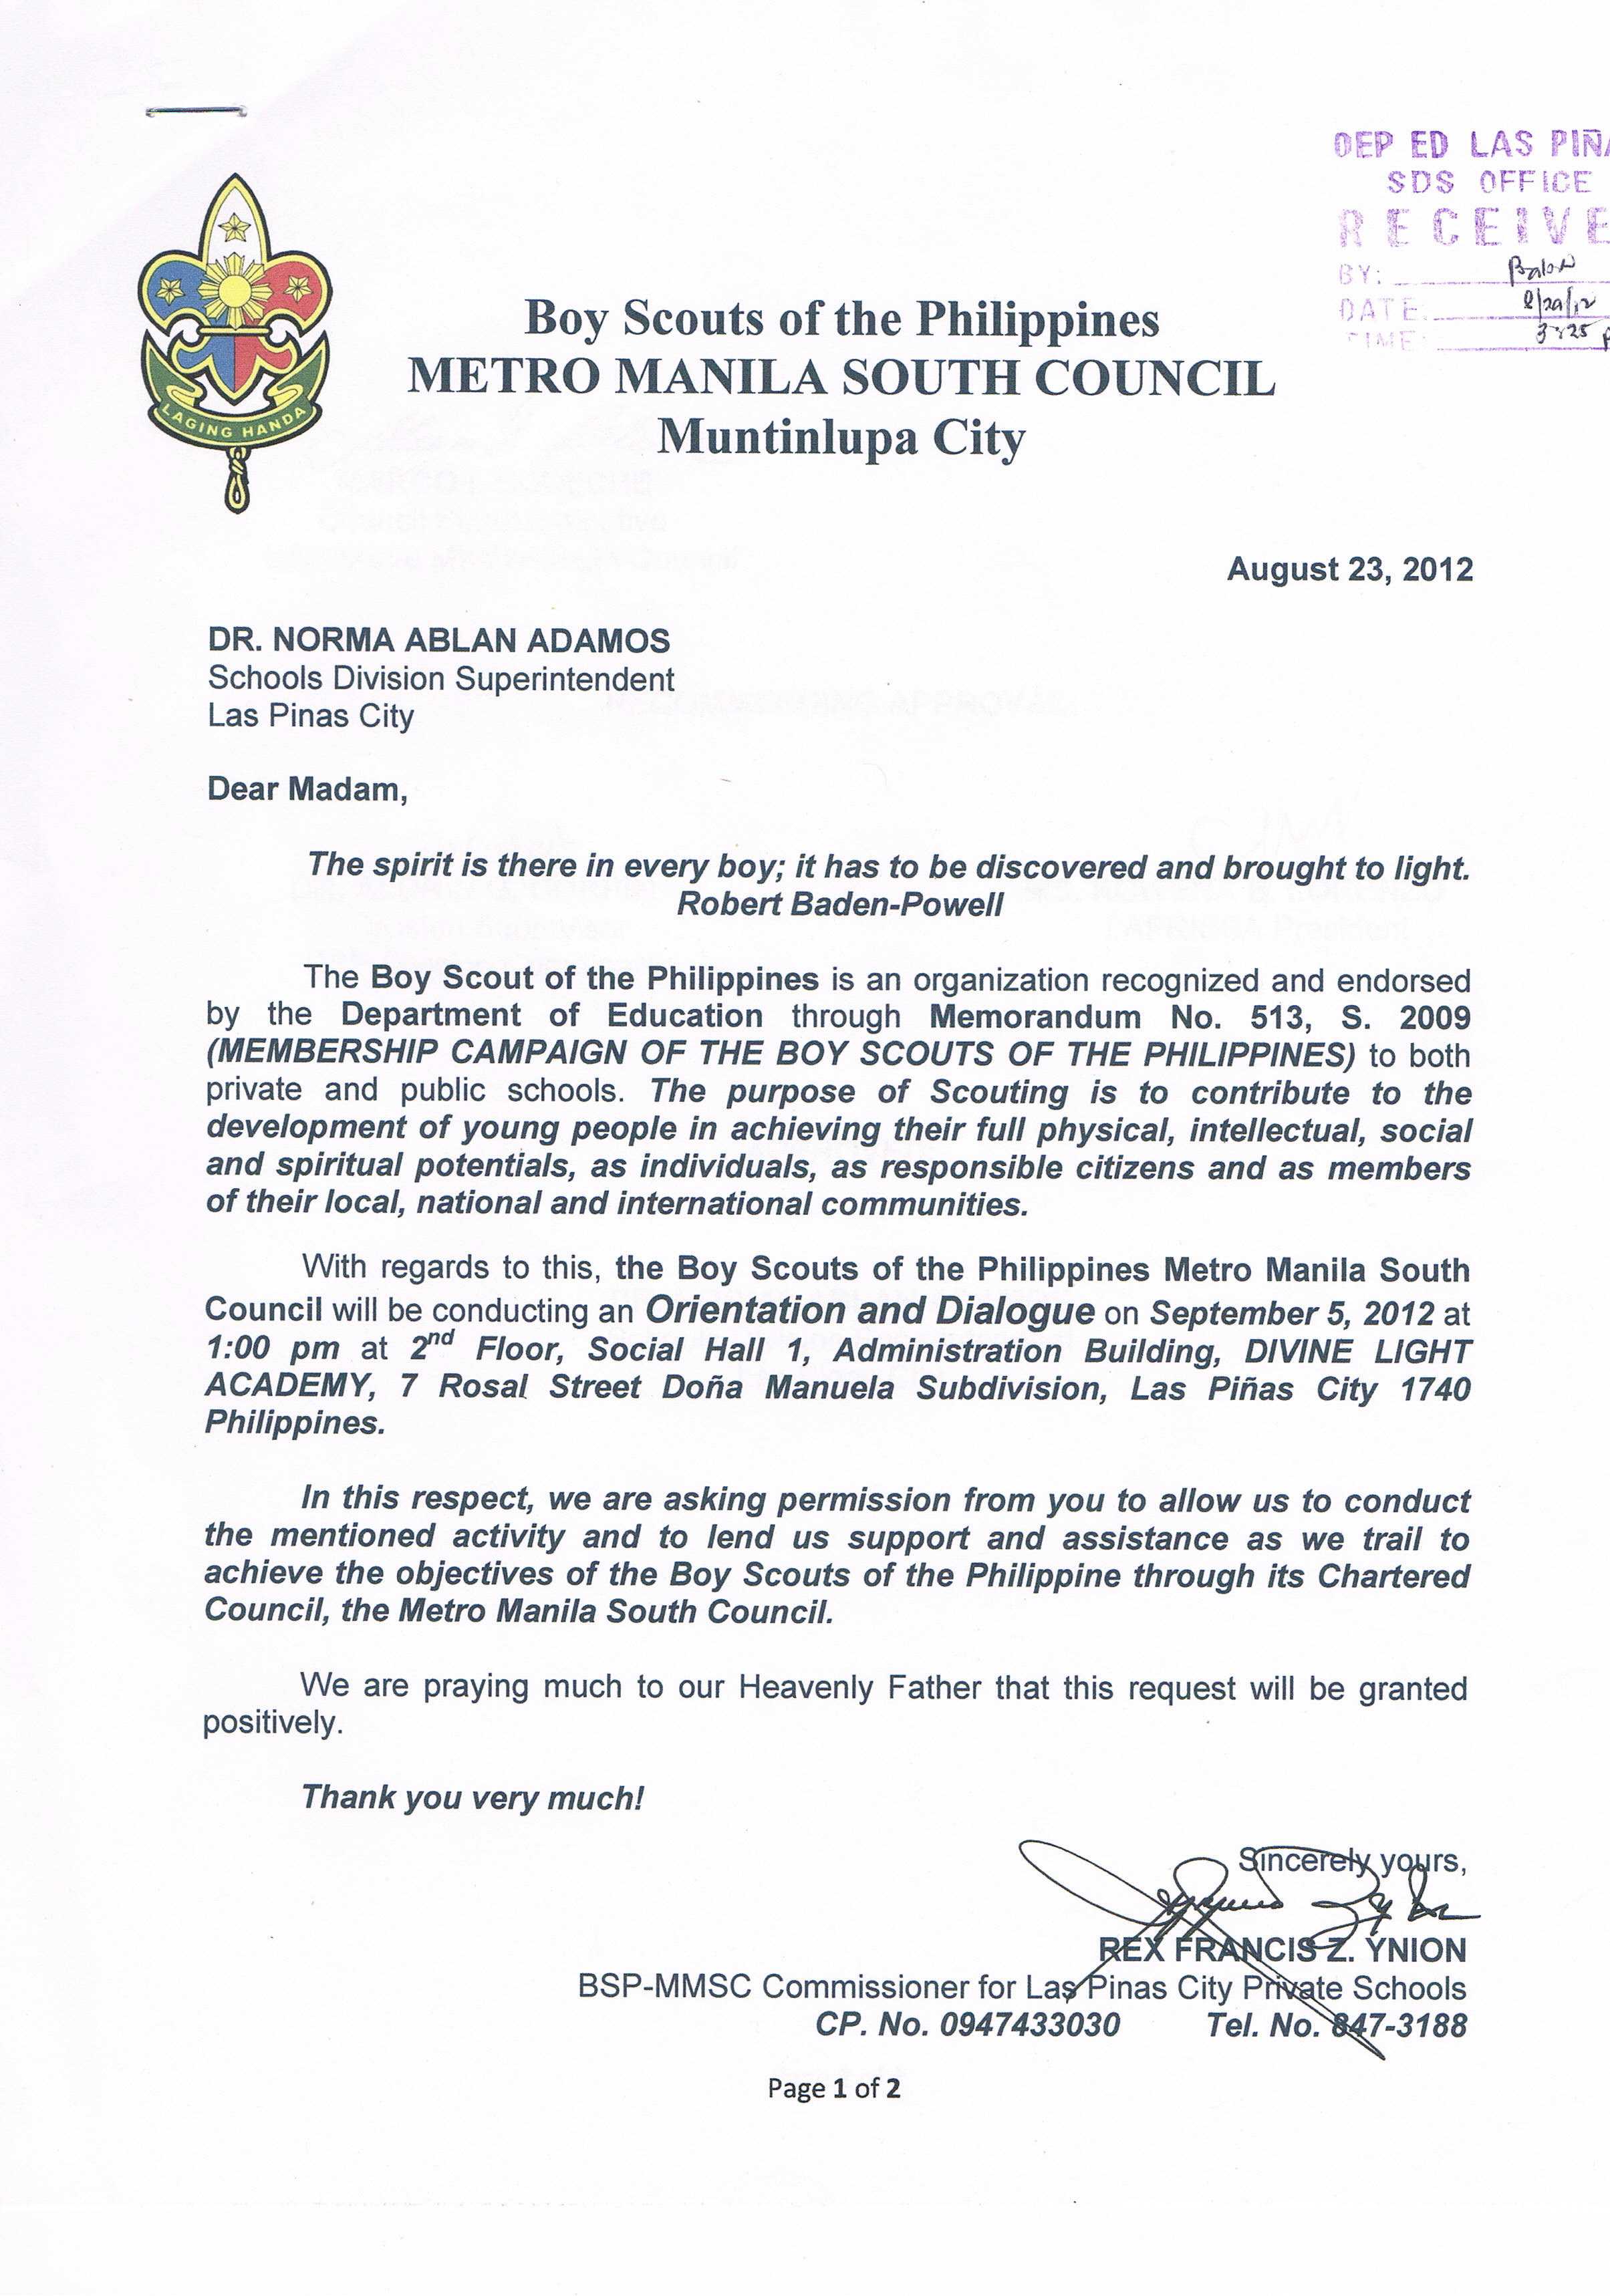 Filebsp letter to all las pinas city school headsg wikimedia filebsp letter to all las pinas city school headsg thecheapjerseys Image collections